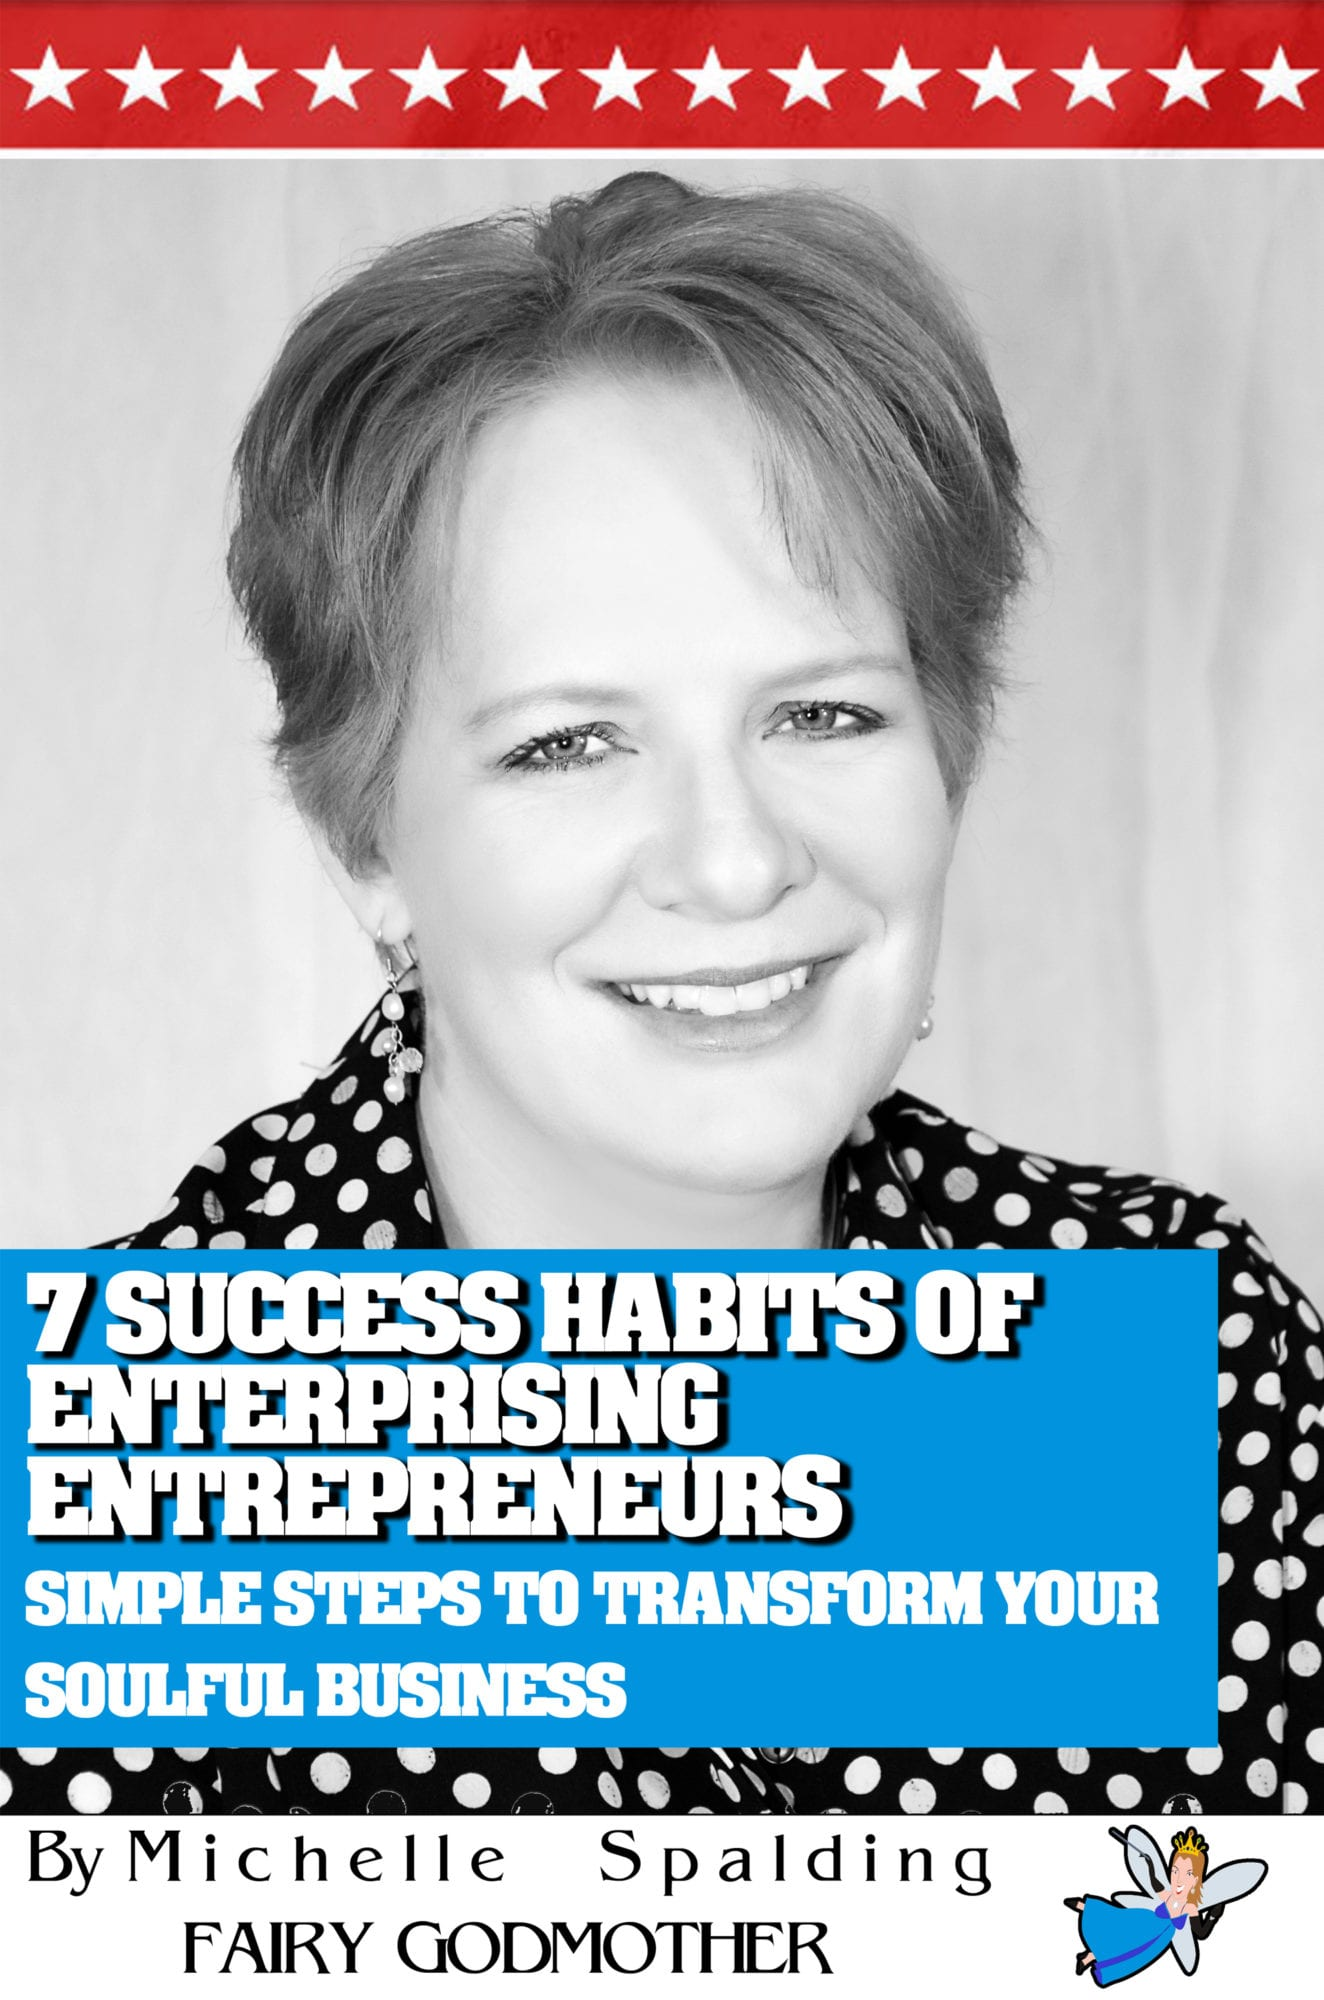 7 Success Habits of Enterprising Entrepreneurs